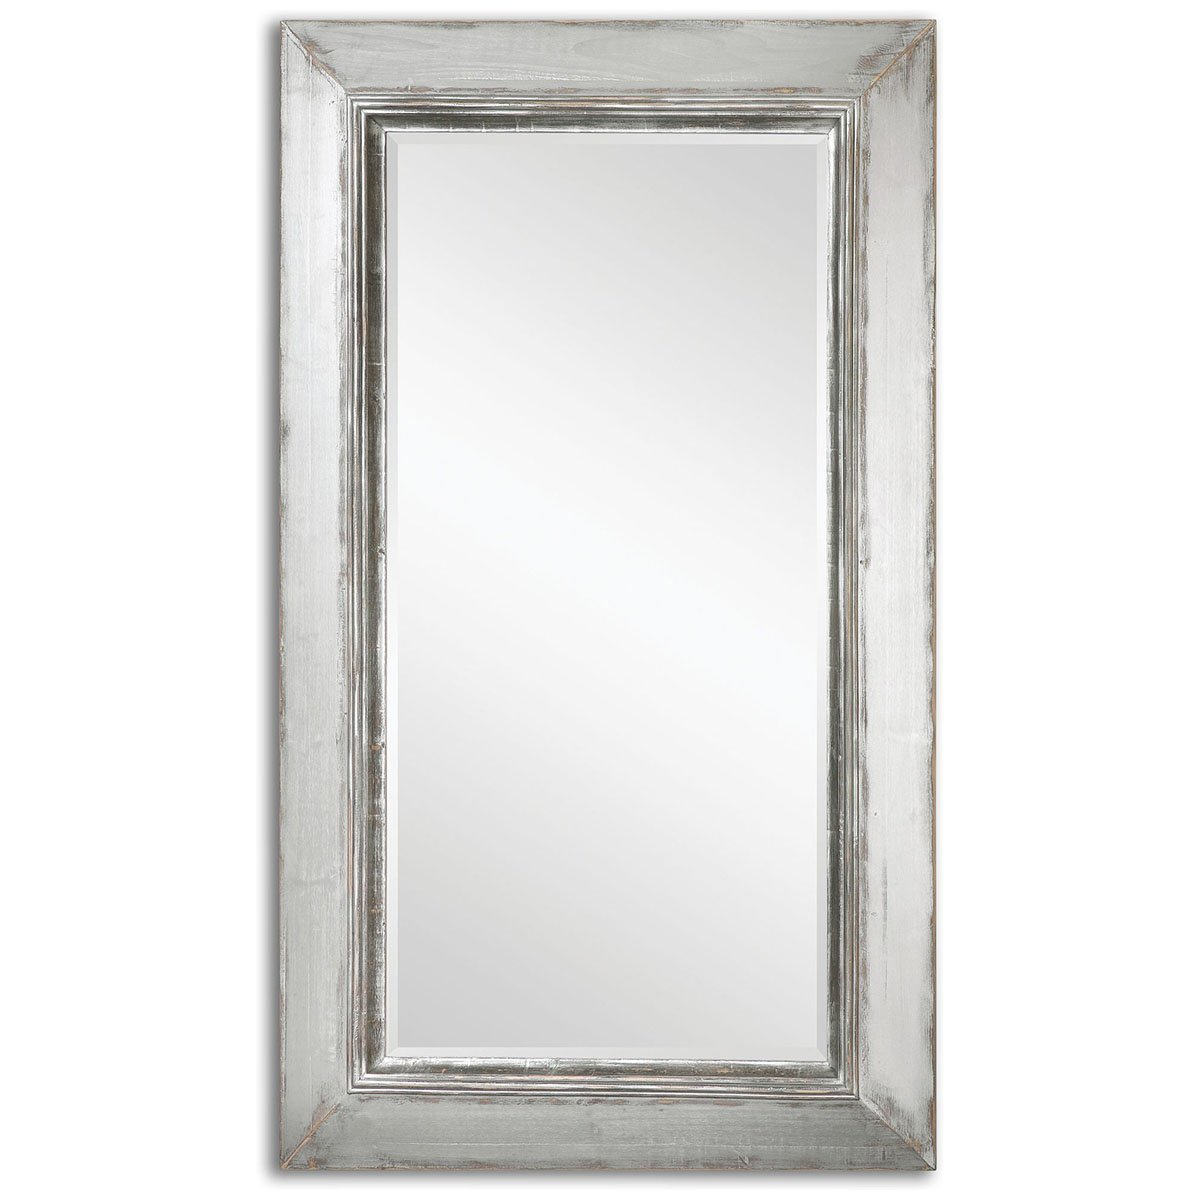 Amazon.com: Uttermost 13880 Lucanus Oversized Mirror, Silver: Home ...